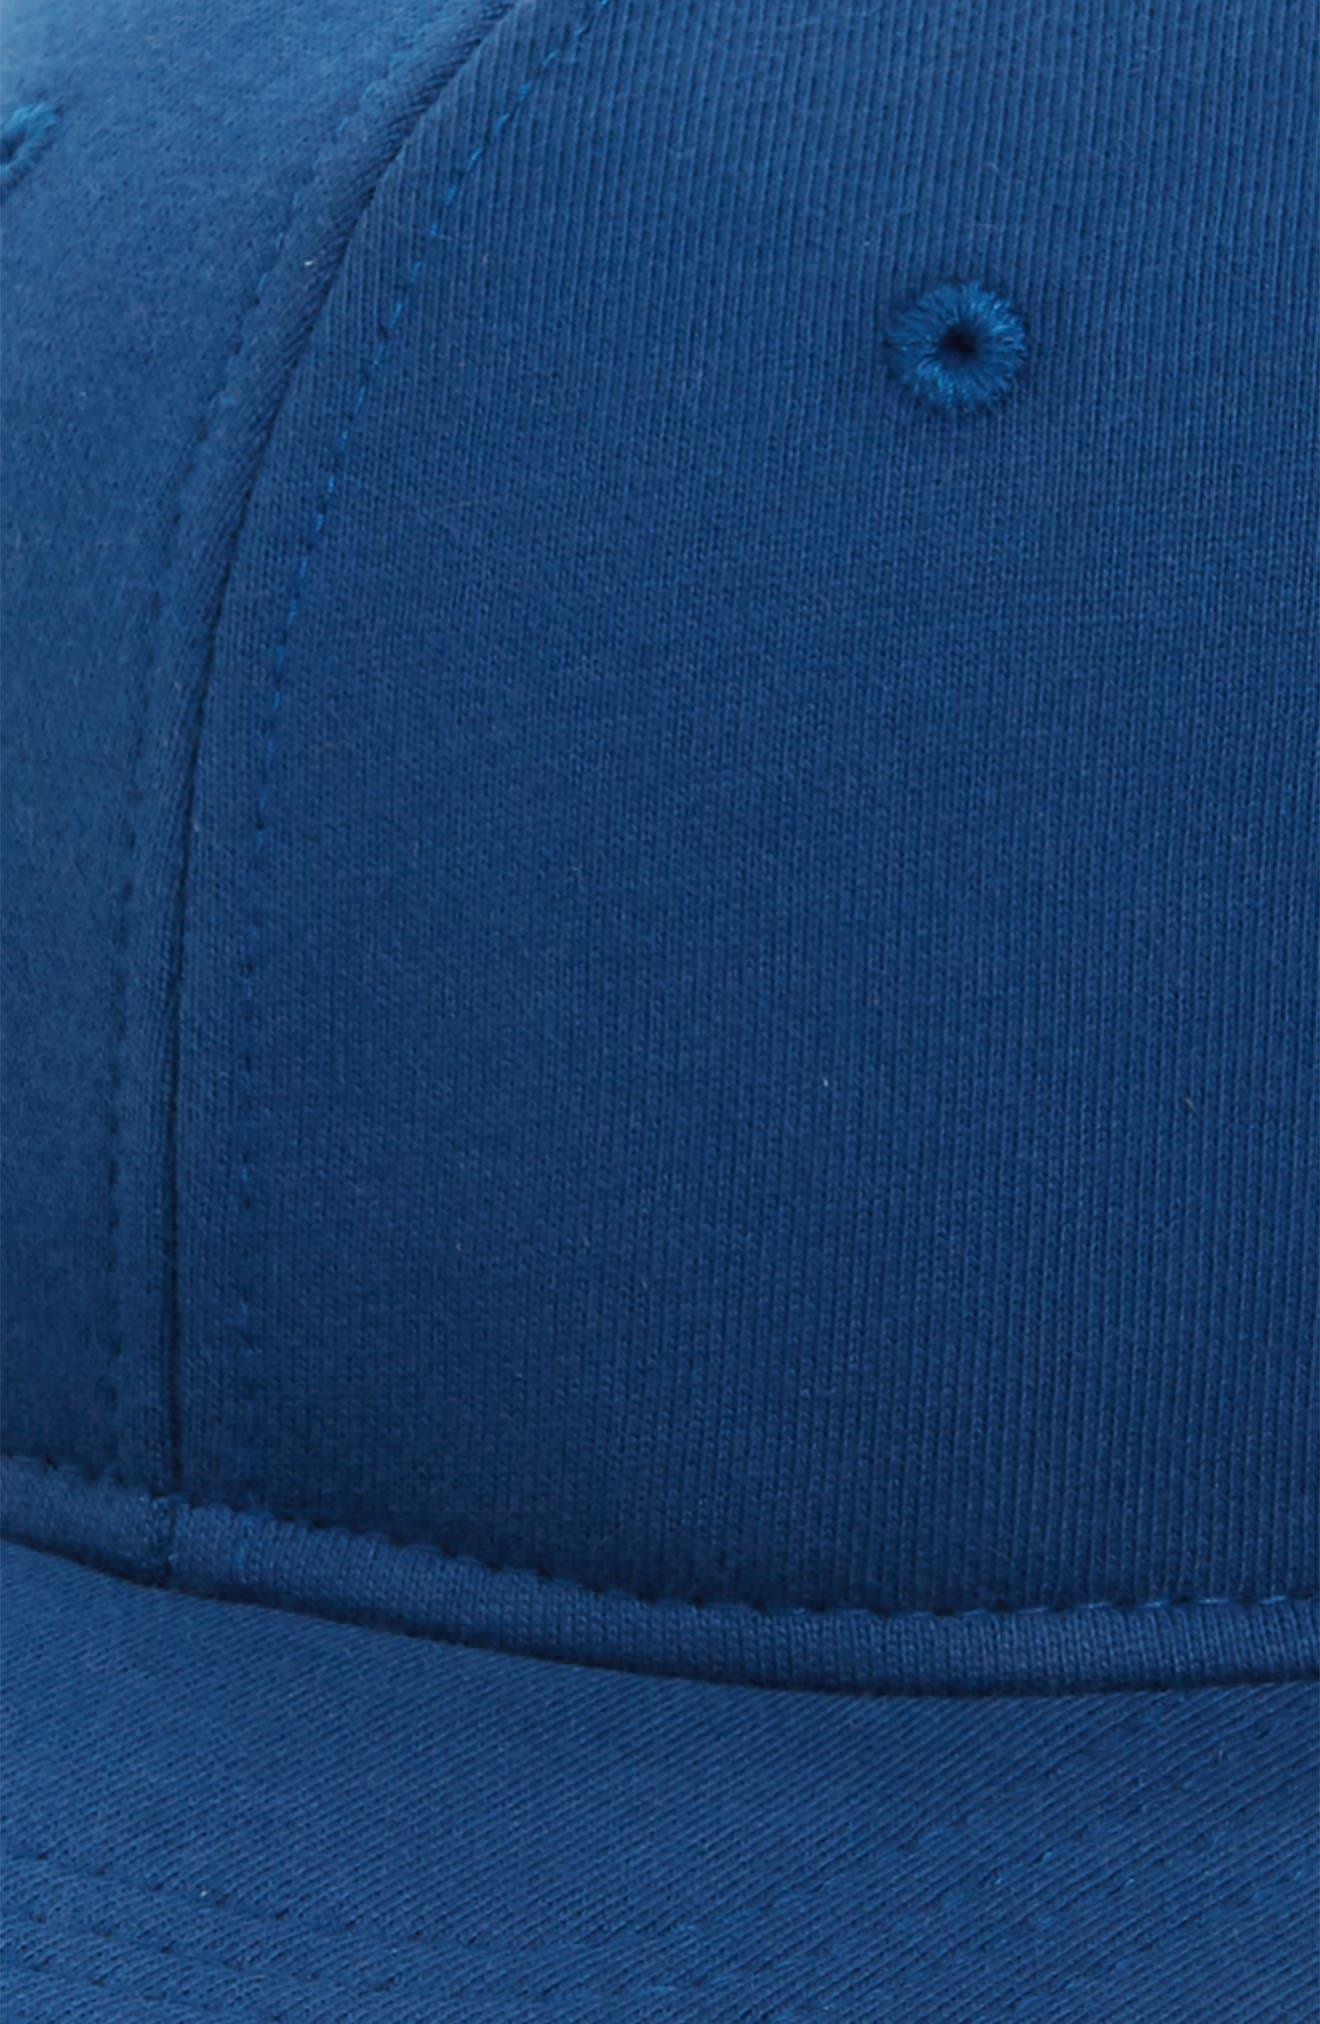 Baseball Cap,                             Alternate thumbnail 3, color,                             Court Blue